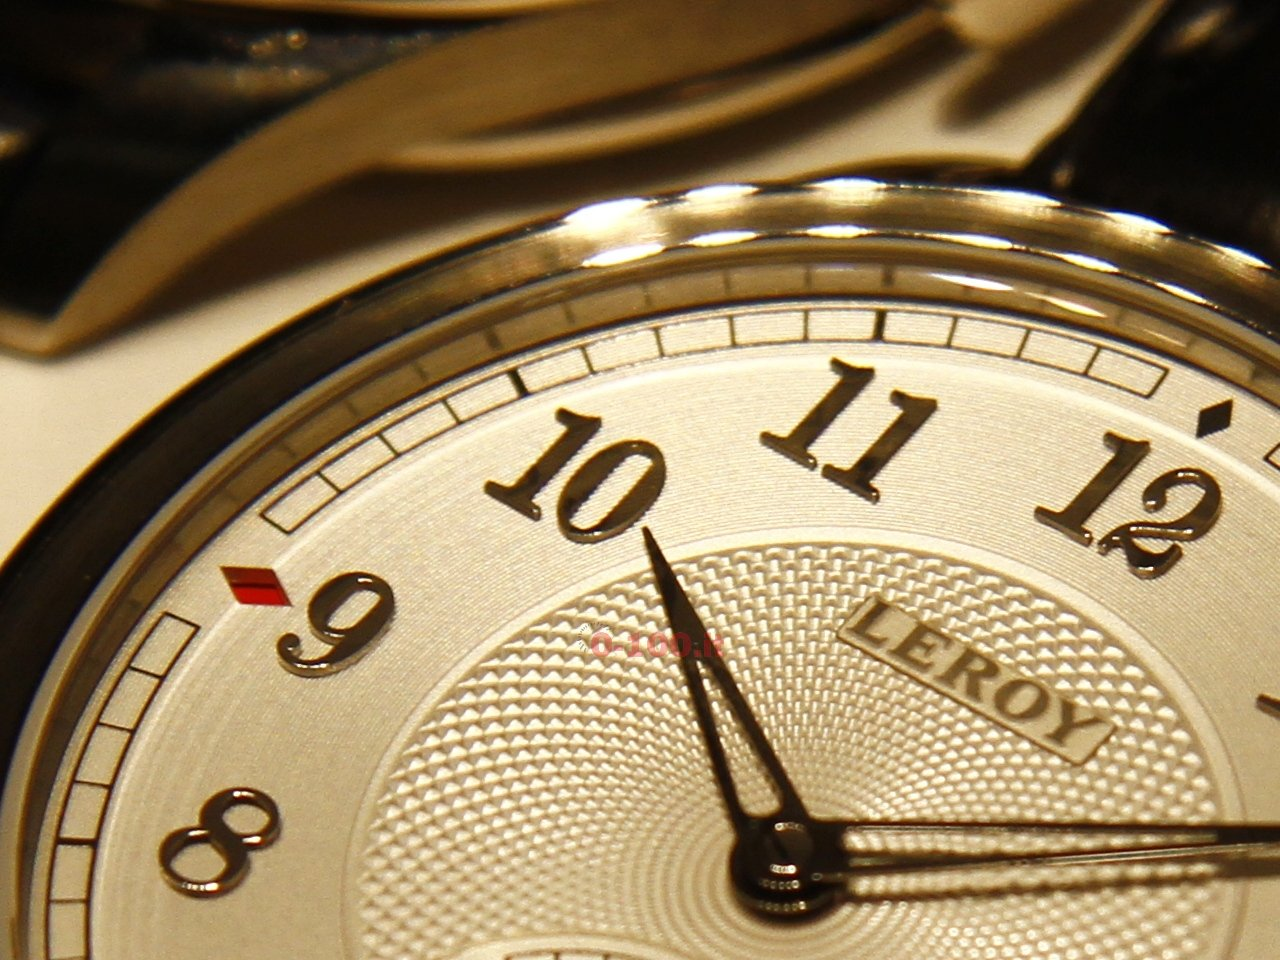 baselworld-2015_leroy-chronometer-l200-0-100-9